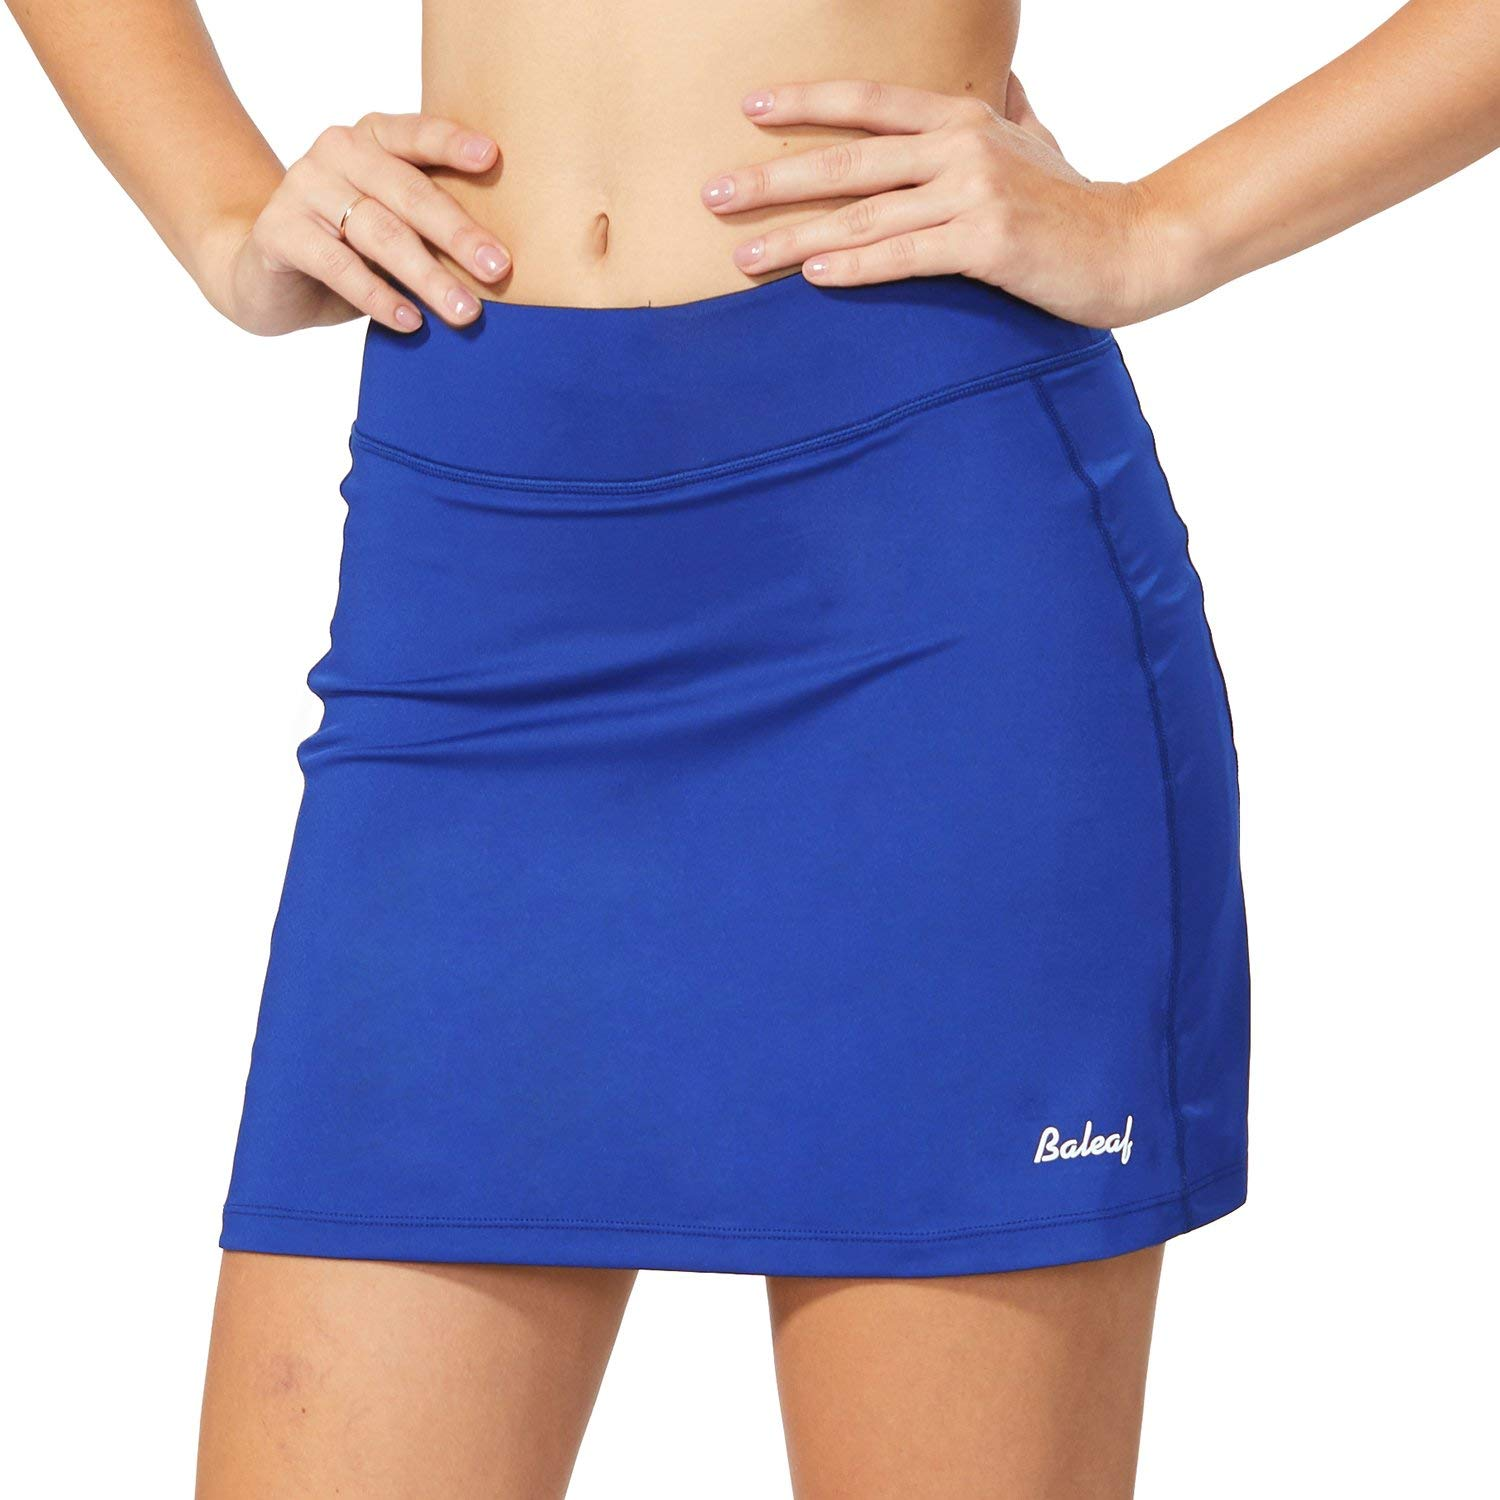 BALEAF Women's Active Athletic Skort Lightweight Skirt with Pockets for Running Tennis Golf Workout Blue Size L by BALEAF